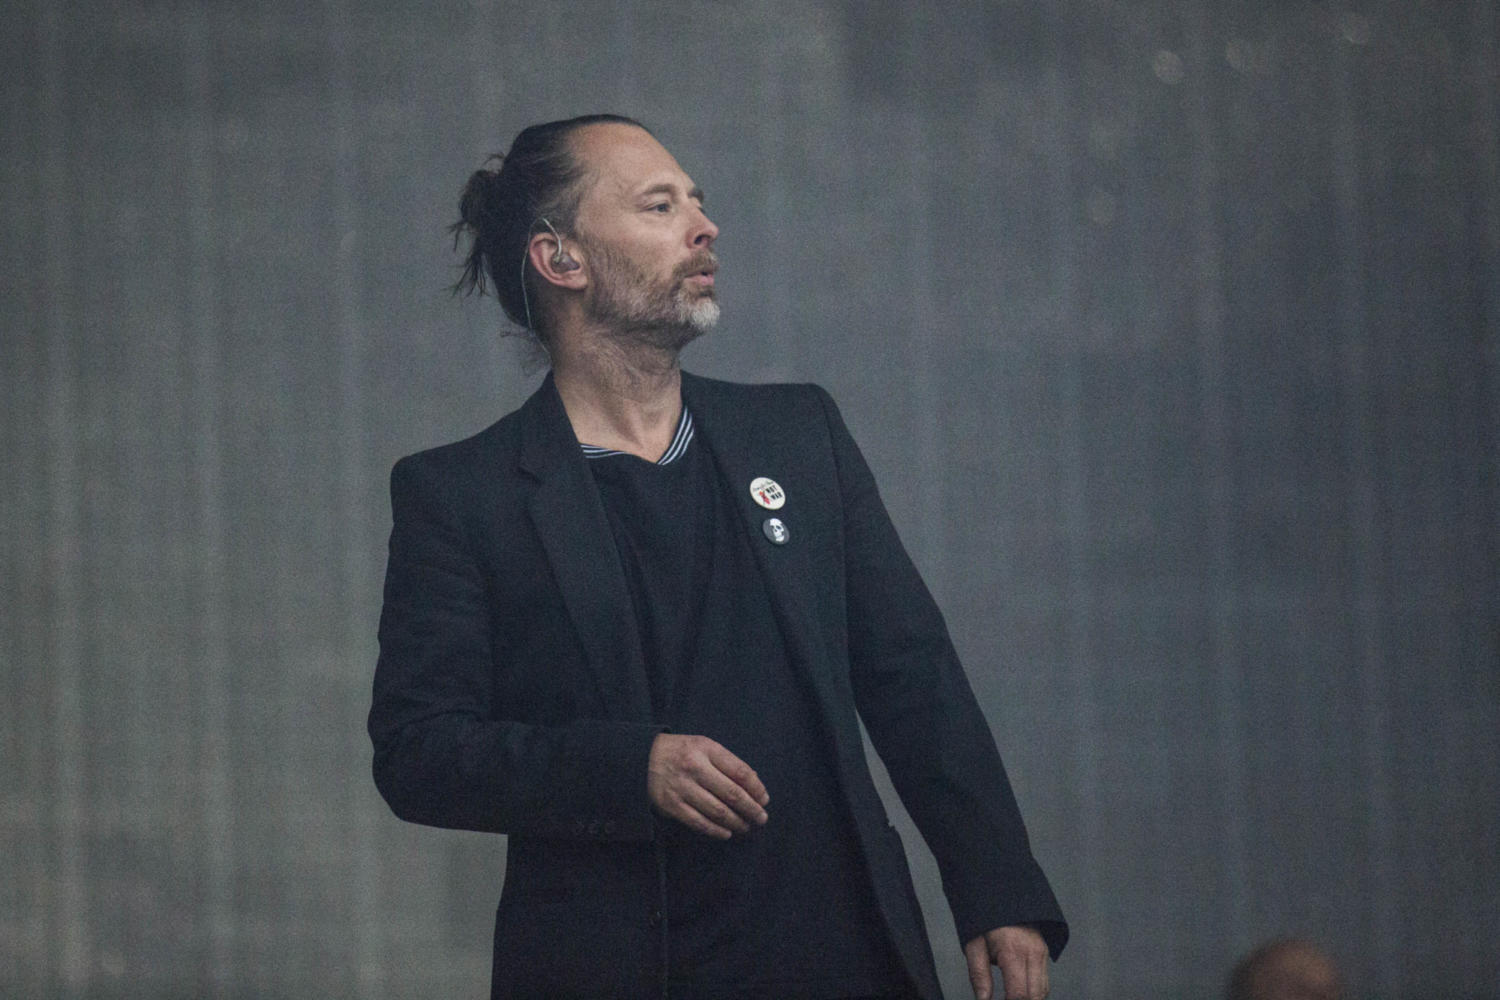 Watch Thom Yorke debut new song 'Gawpers'